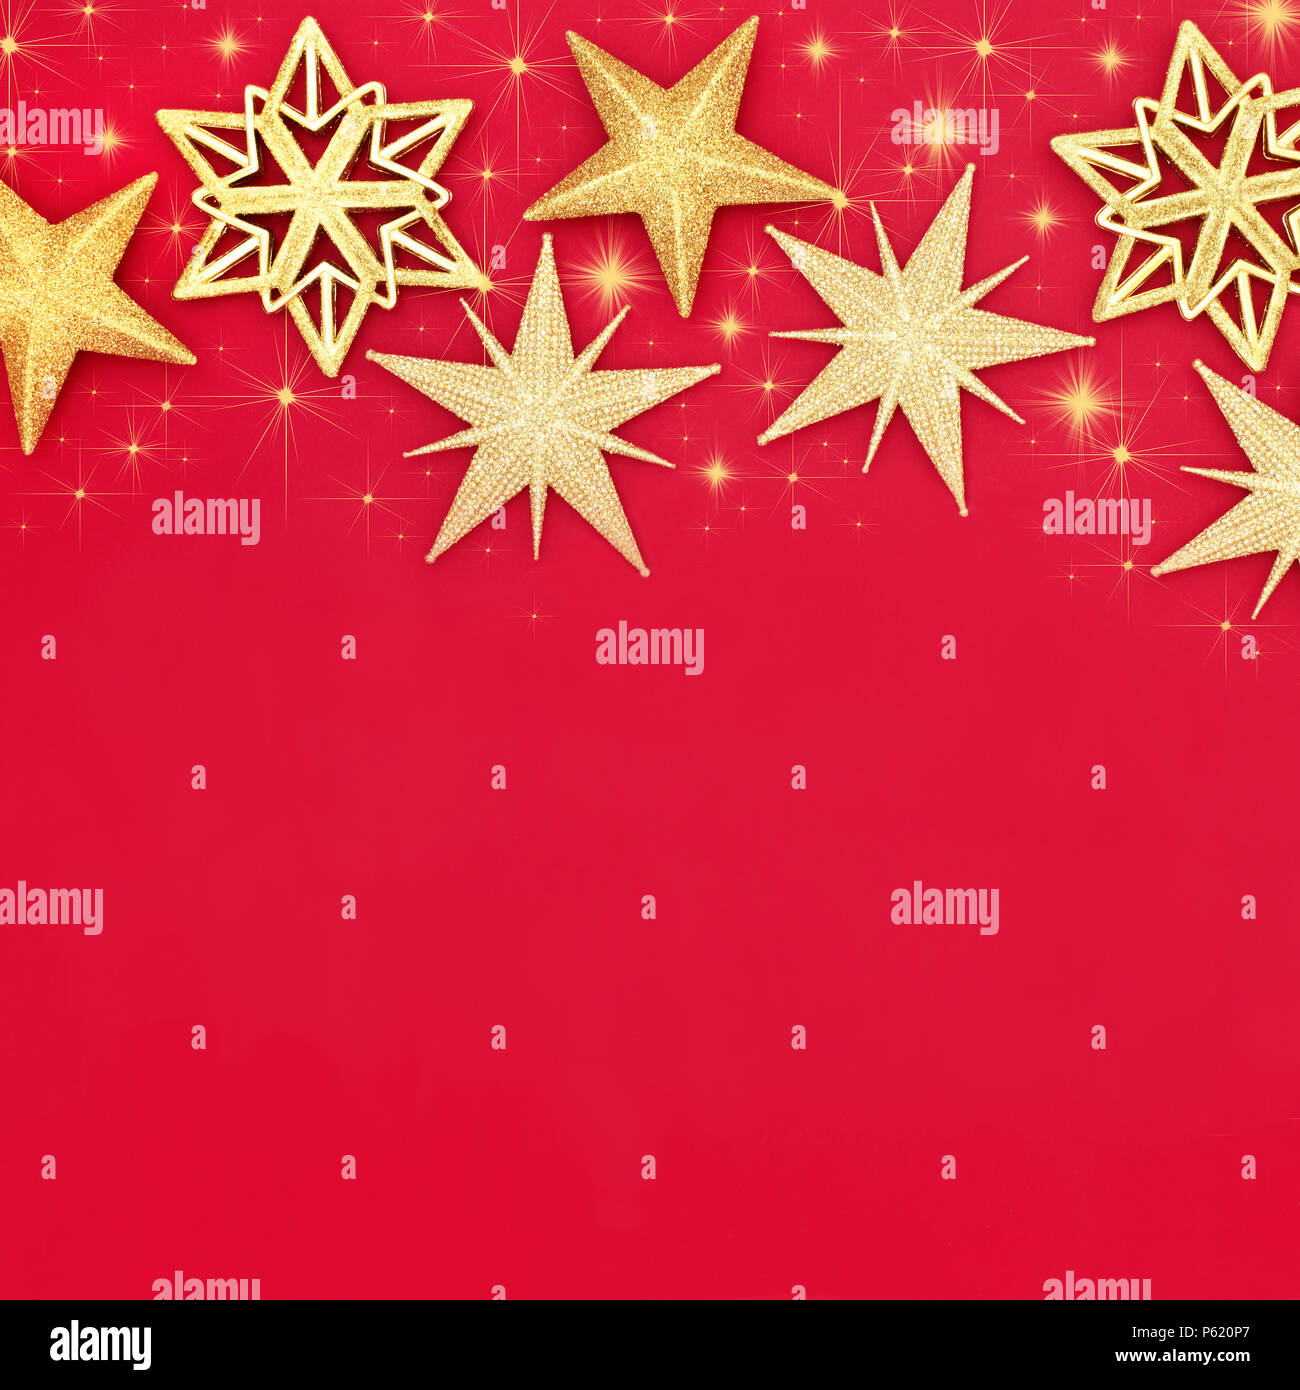 Christmas gold sparkling star bauble decorations with decorative stars  forming an abstract background on red with copy space. Traditional  Christmas gr